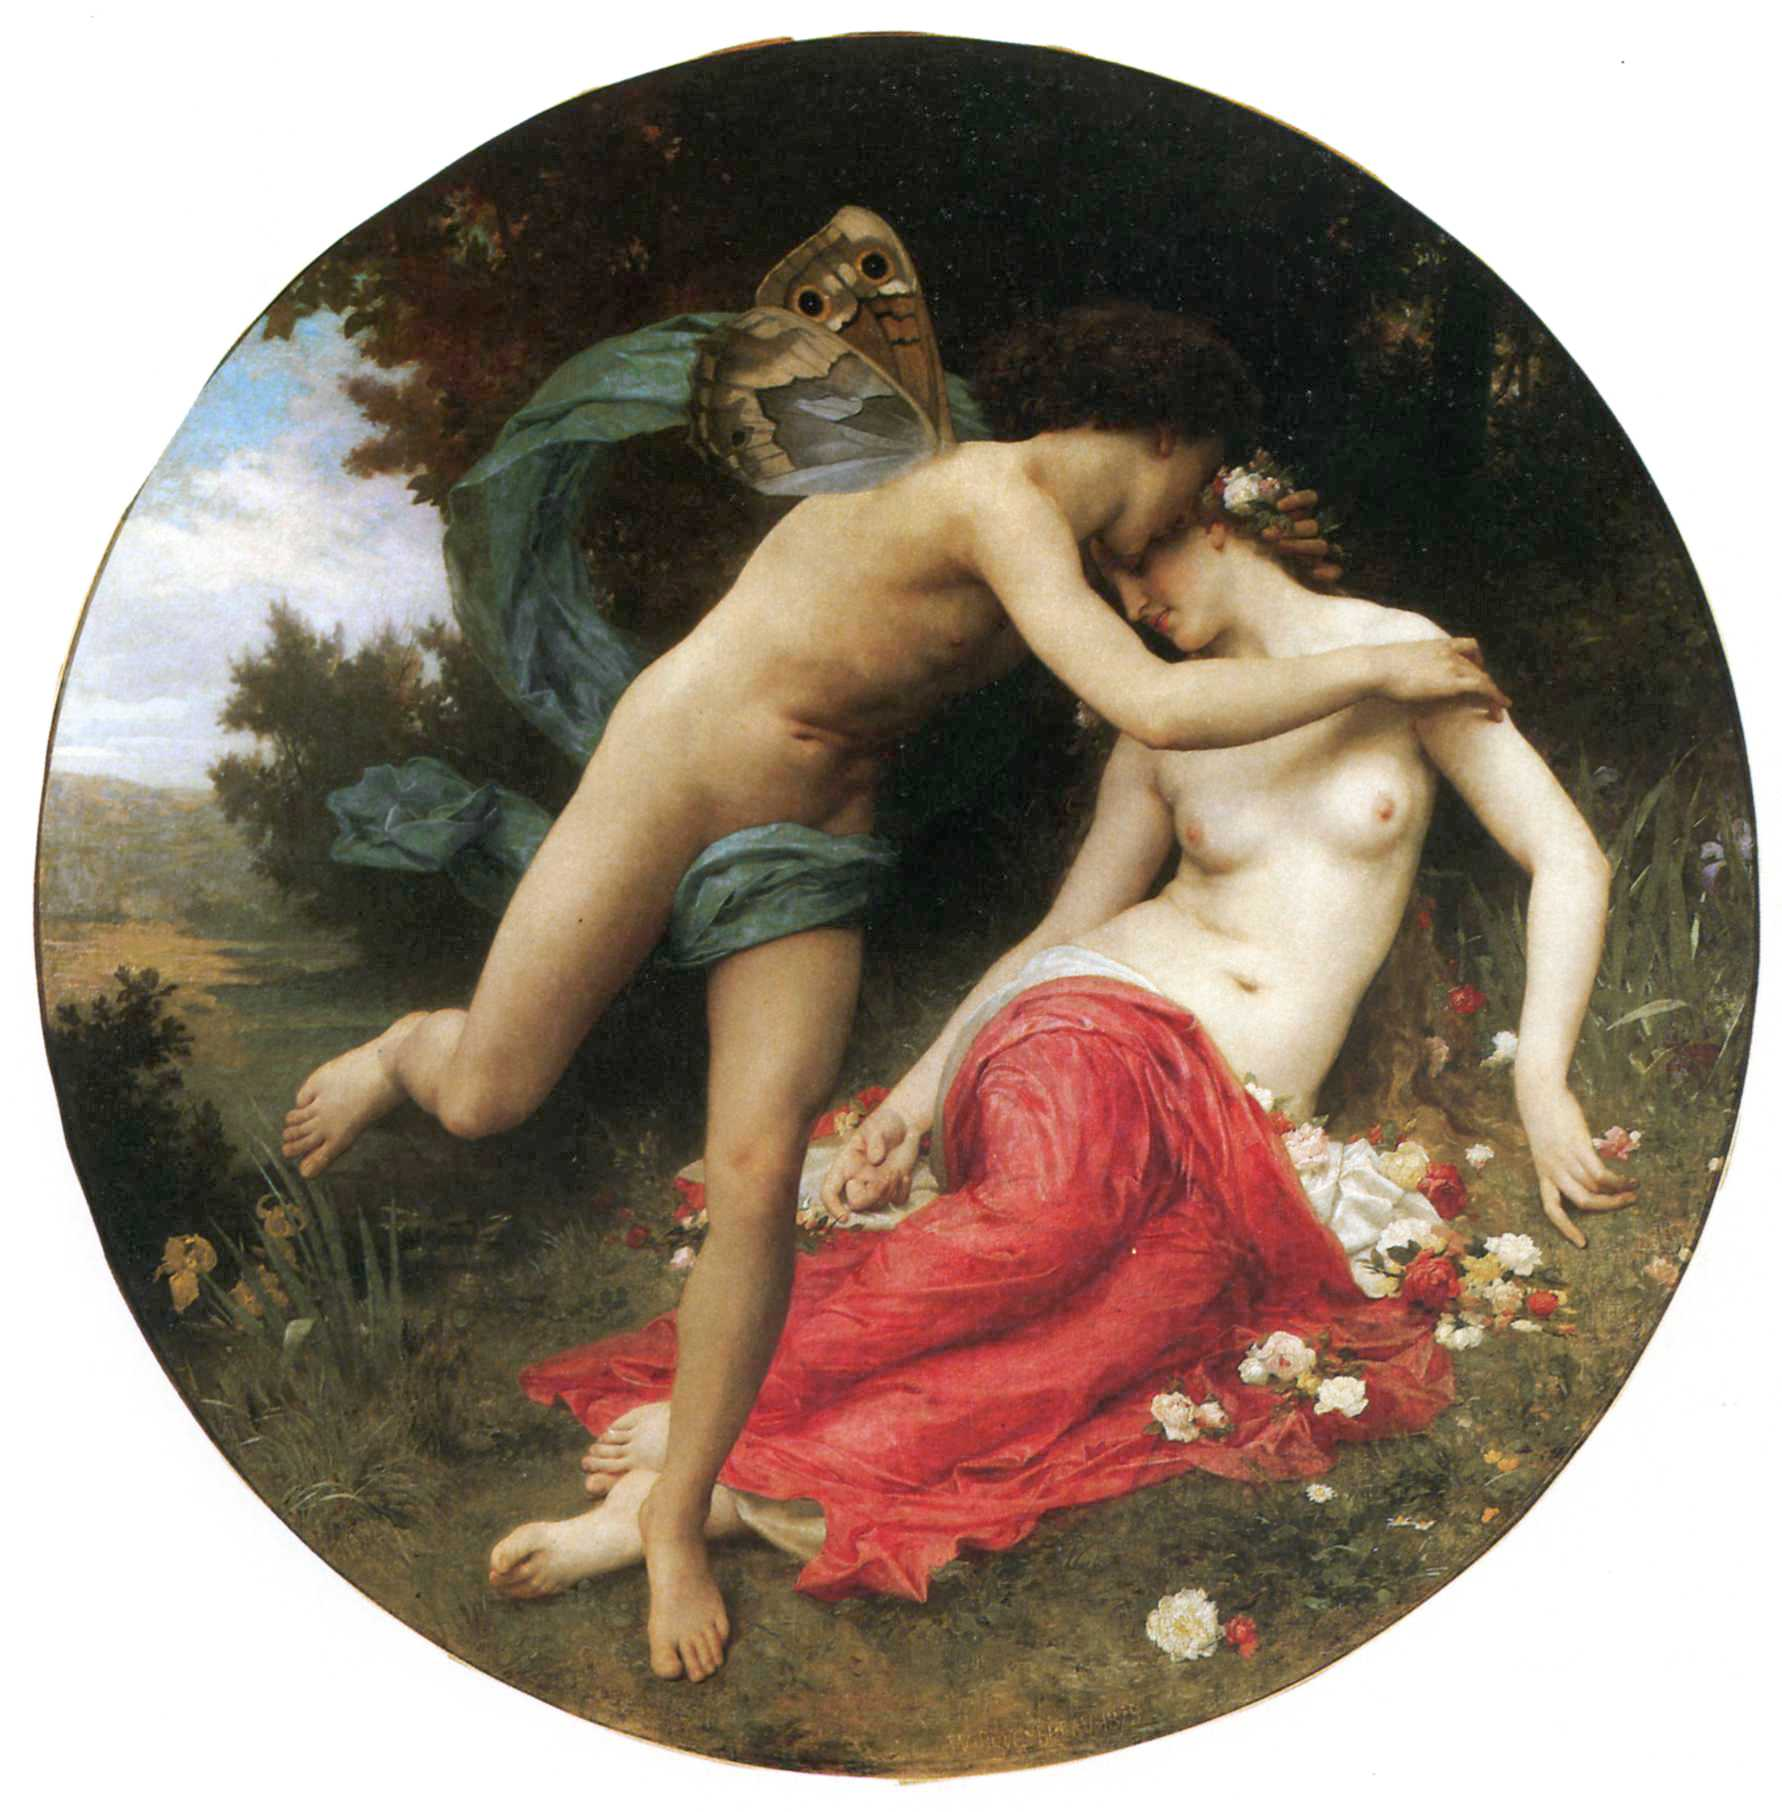 http://upload.wikimedia.org/wikipedia/commons/f/fe/William-Adolphe_Bouguereau_(1825-1905)_-_Flora_And_Zephyr_(1875).jpg